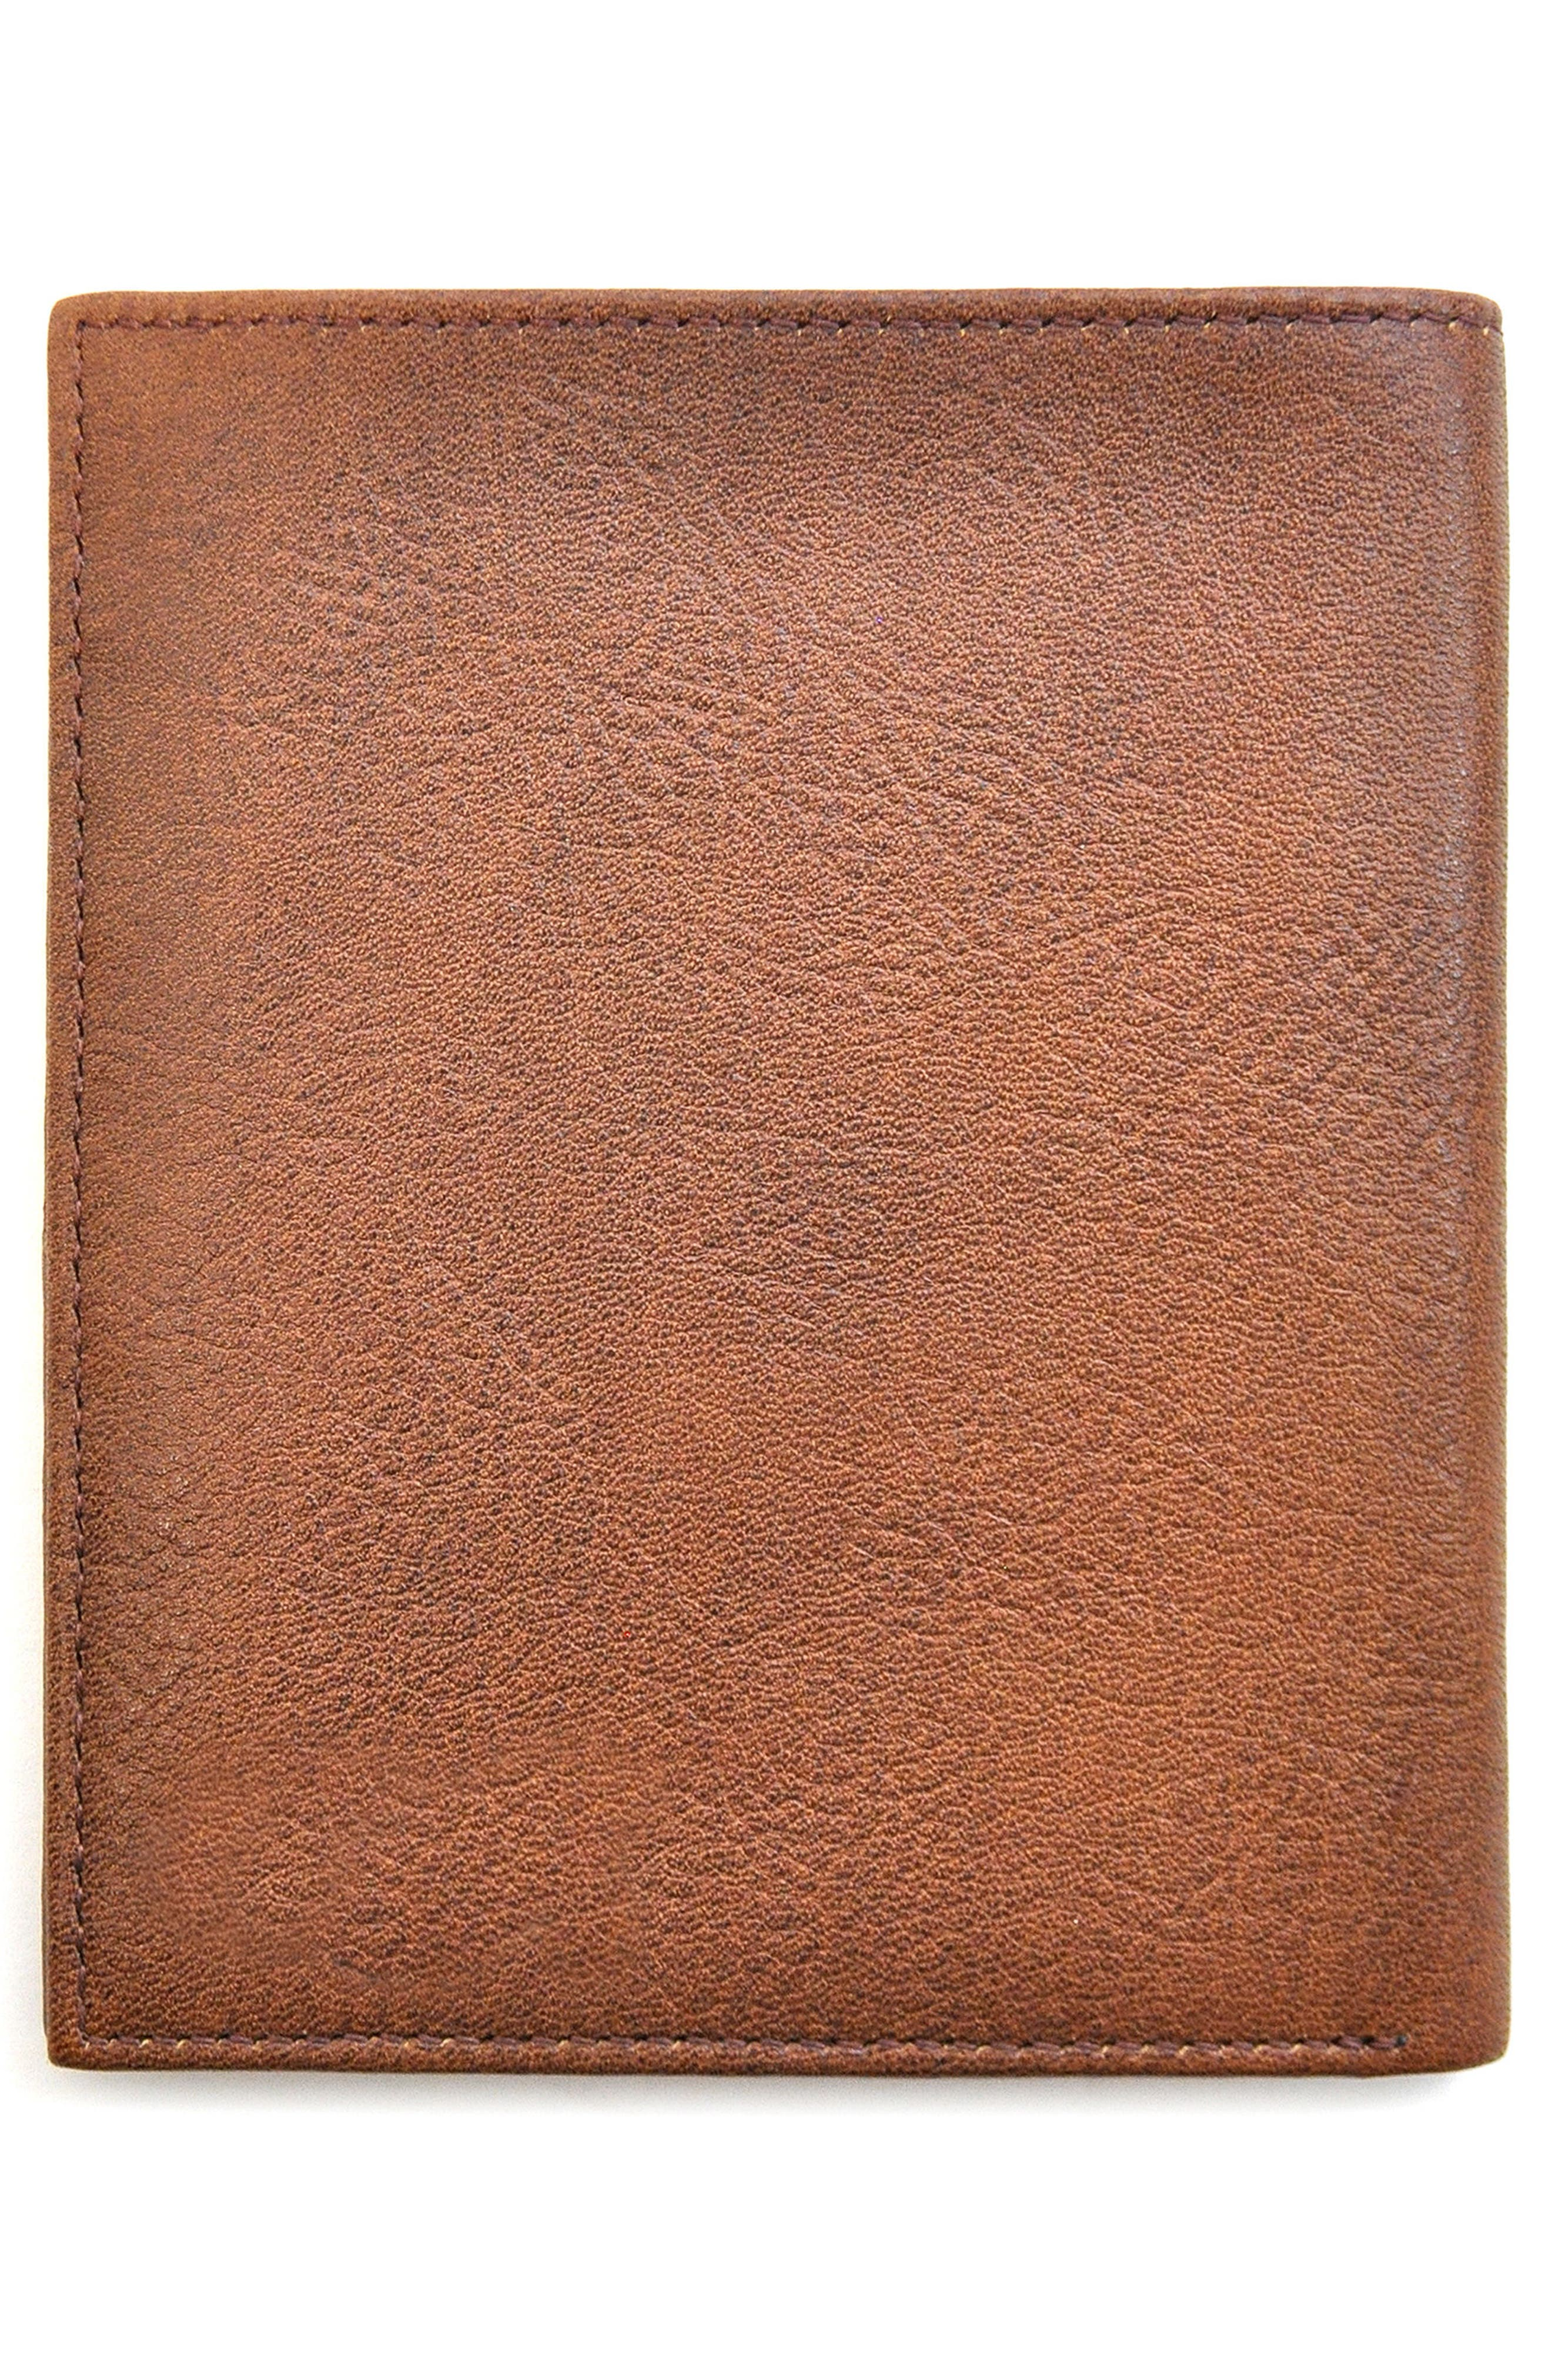 Triple Play Leather Executive Wallet,                             Alternate thumbnail 3, color,                             202